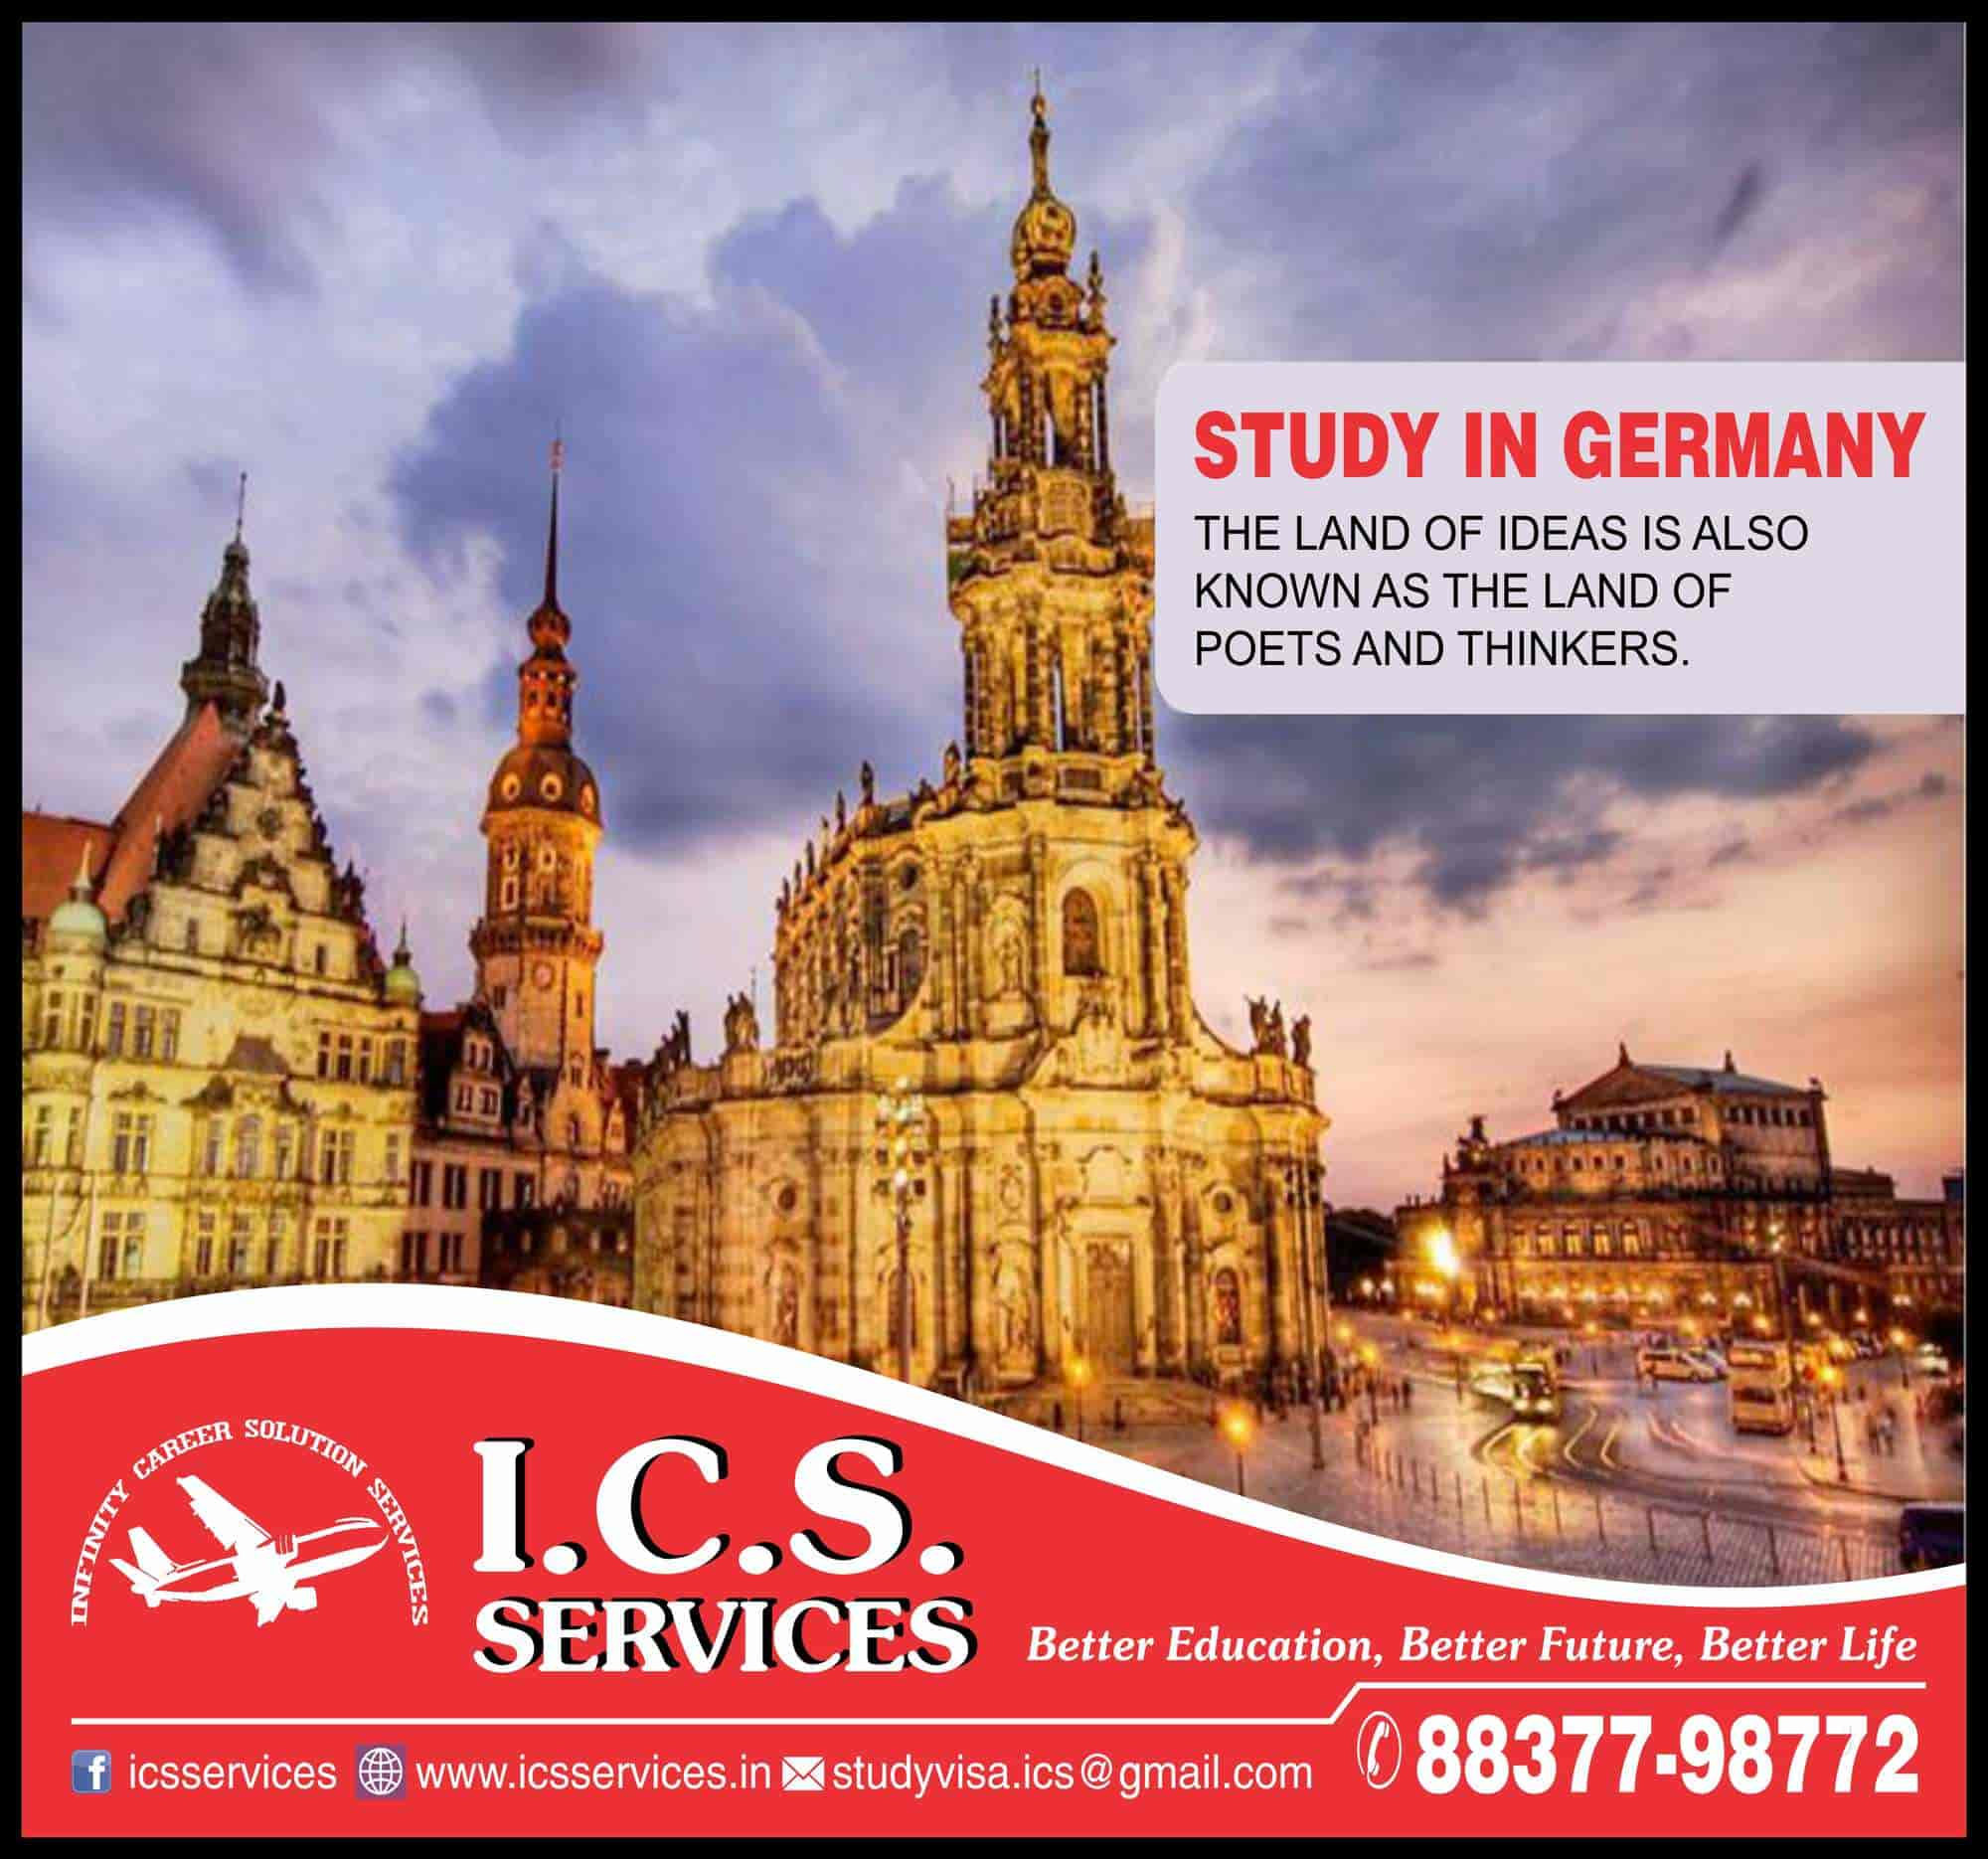 Learn German Ics Services, Sas Nagar - Language Classes For